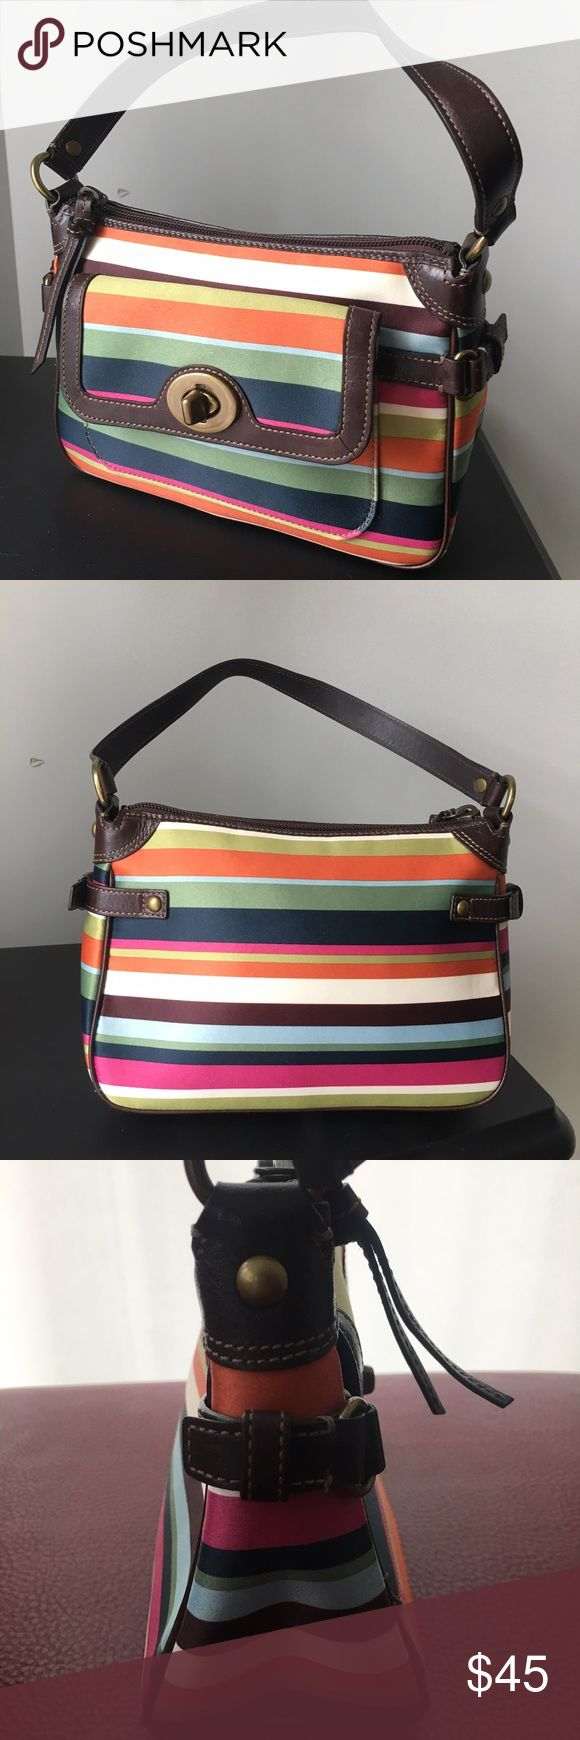 Coach Legacy Poppy Stripe Bag Beautiful Coach Legacy Poppy Stripe Bag 41852. Sateen Handbag has turnlock on the front pocket with shoulder strap on O rings. Like new condition. Material repels rain. Measures 8x5.5x3 Coach Bags